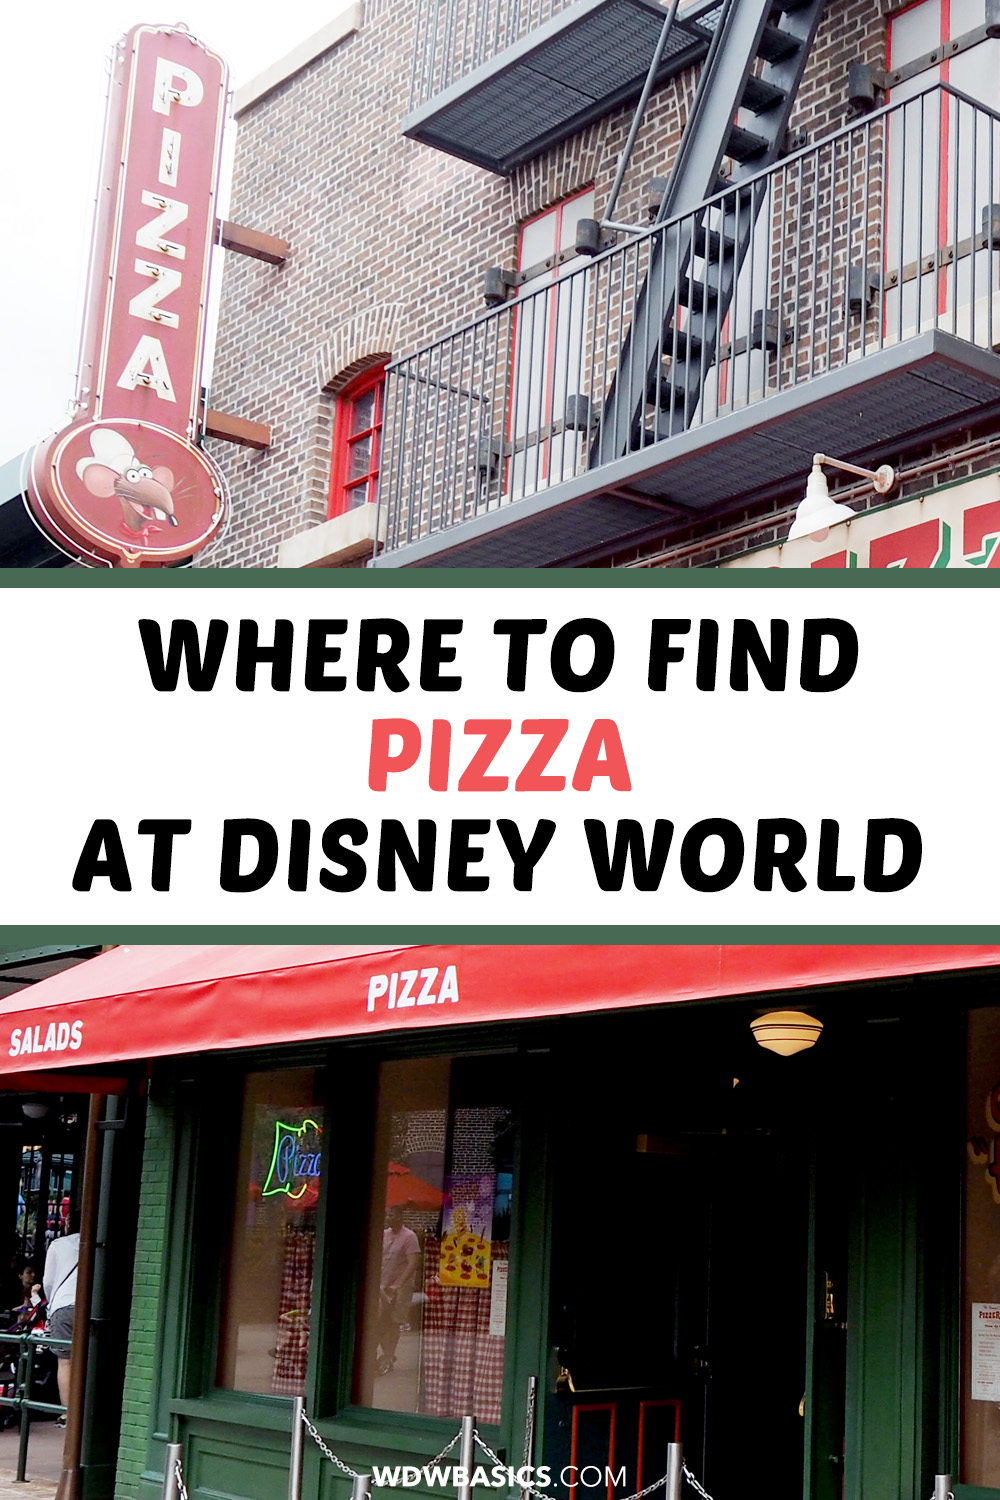 Where to find pizza at Disney World